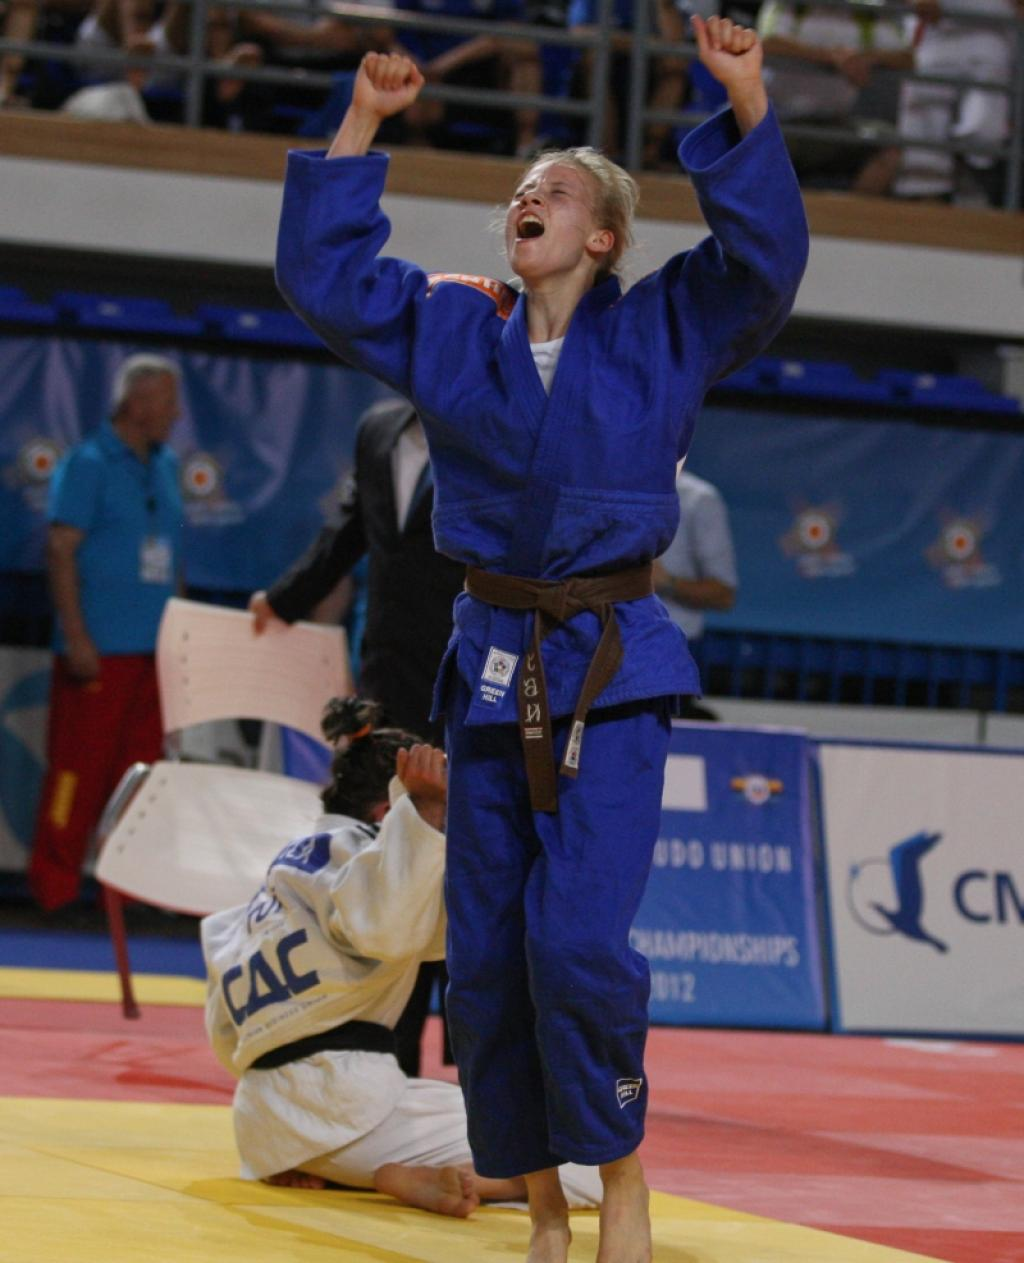 Strong and new medallists at European Championships for Cadets